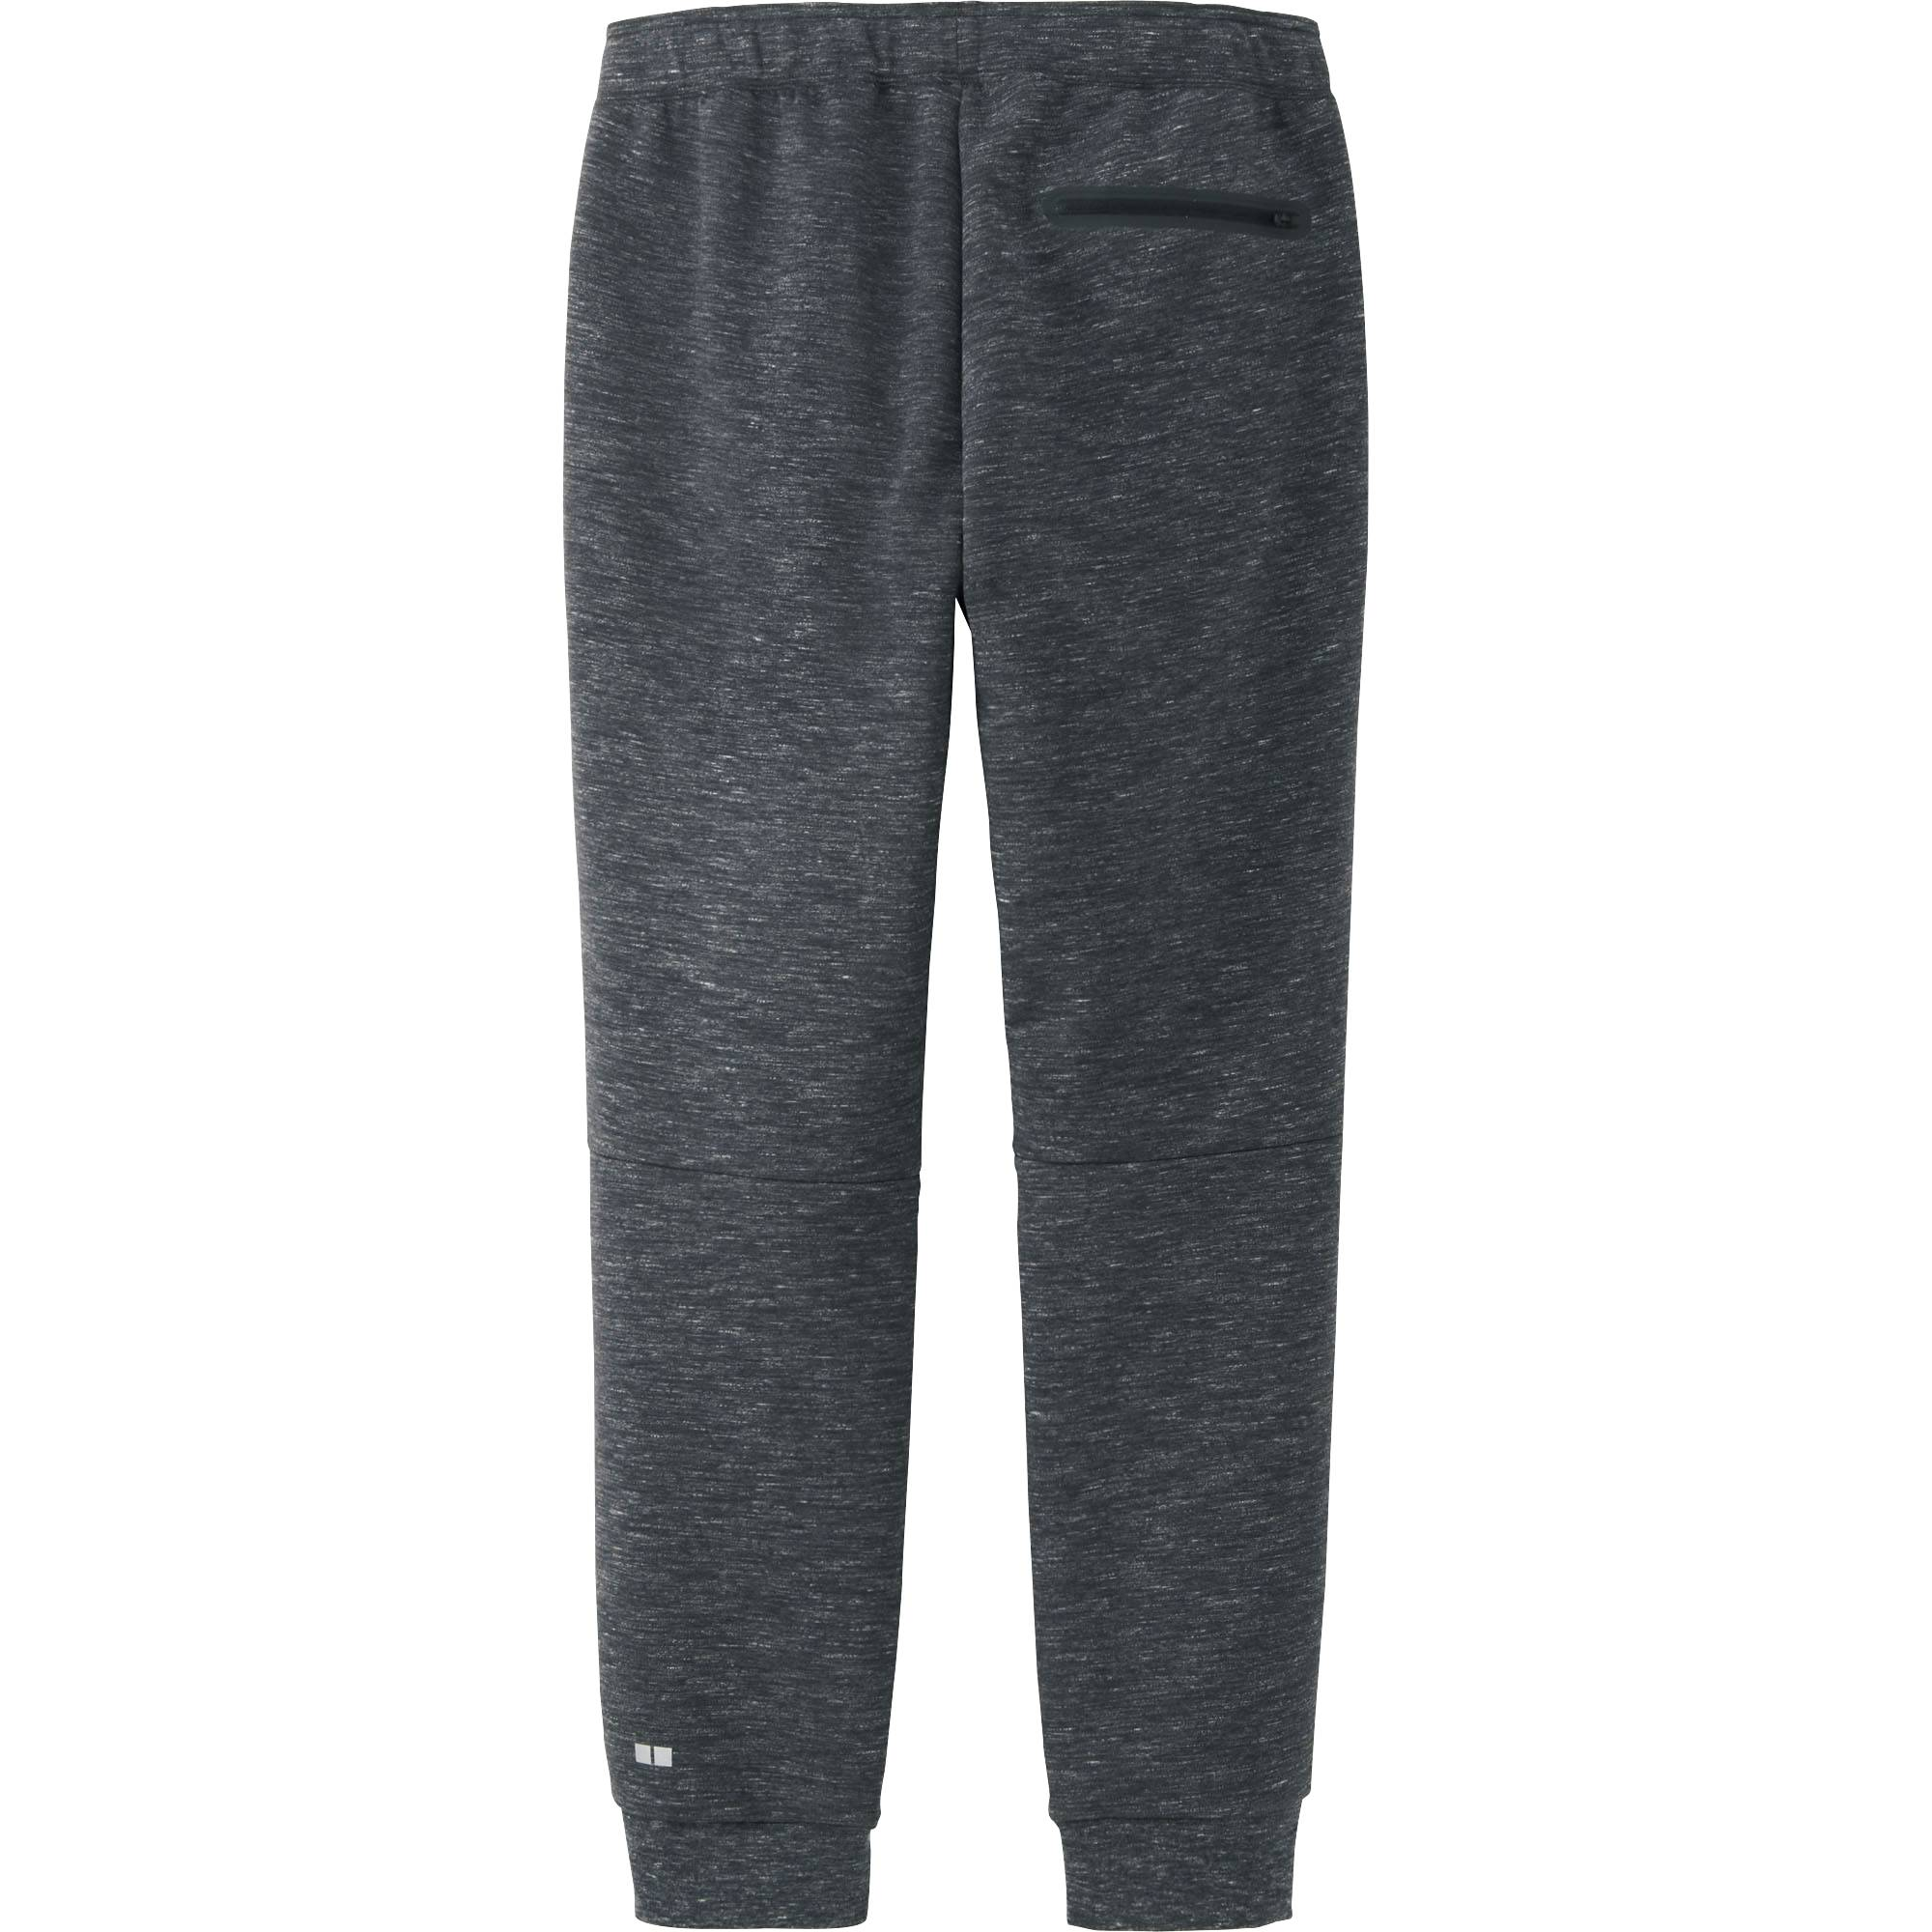 sweatpants for men men dry stretch sweatpants, dark gray, small SFJVVAB